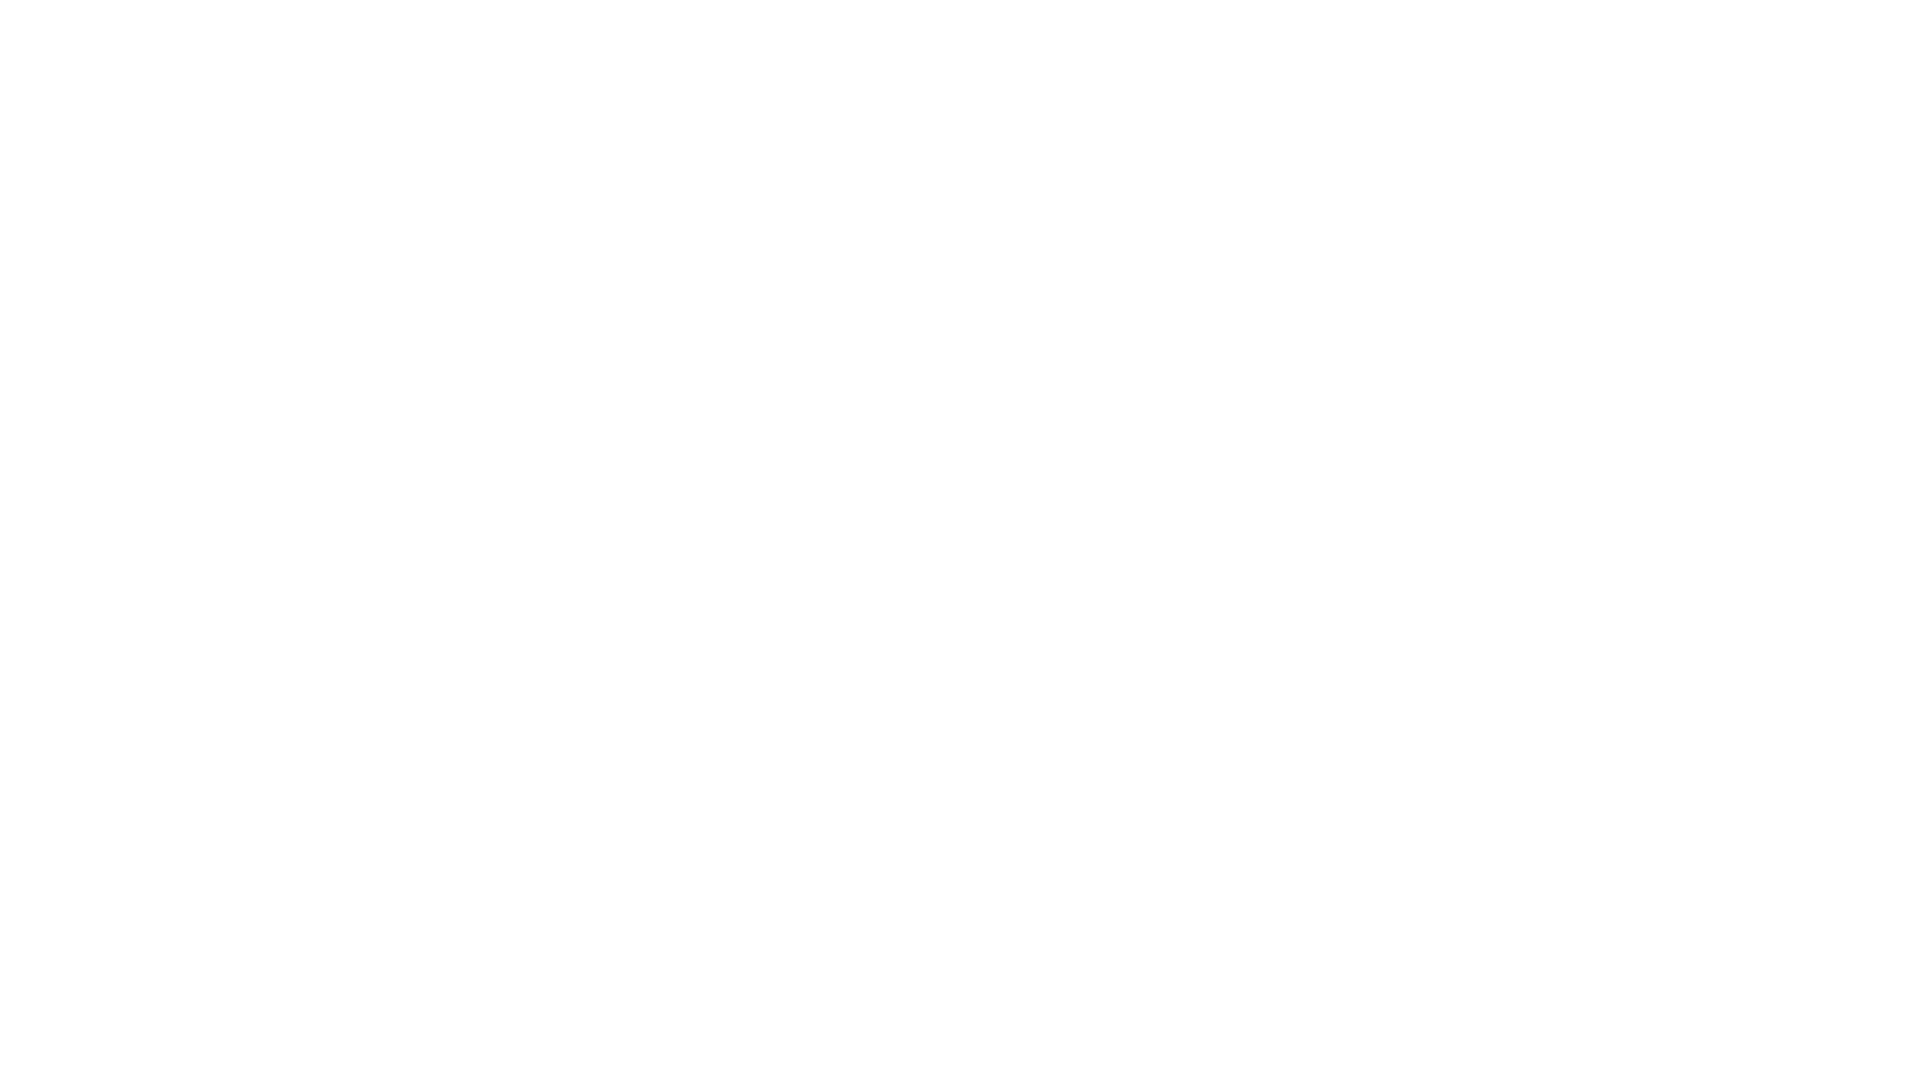 spark. Acoustic Sessions